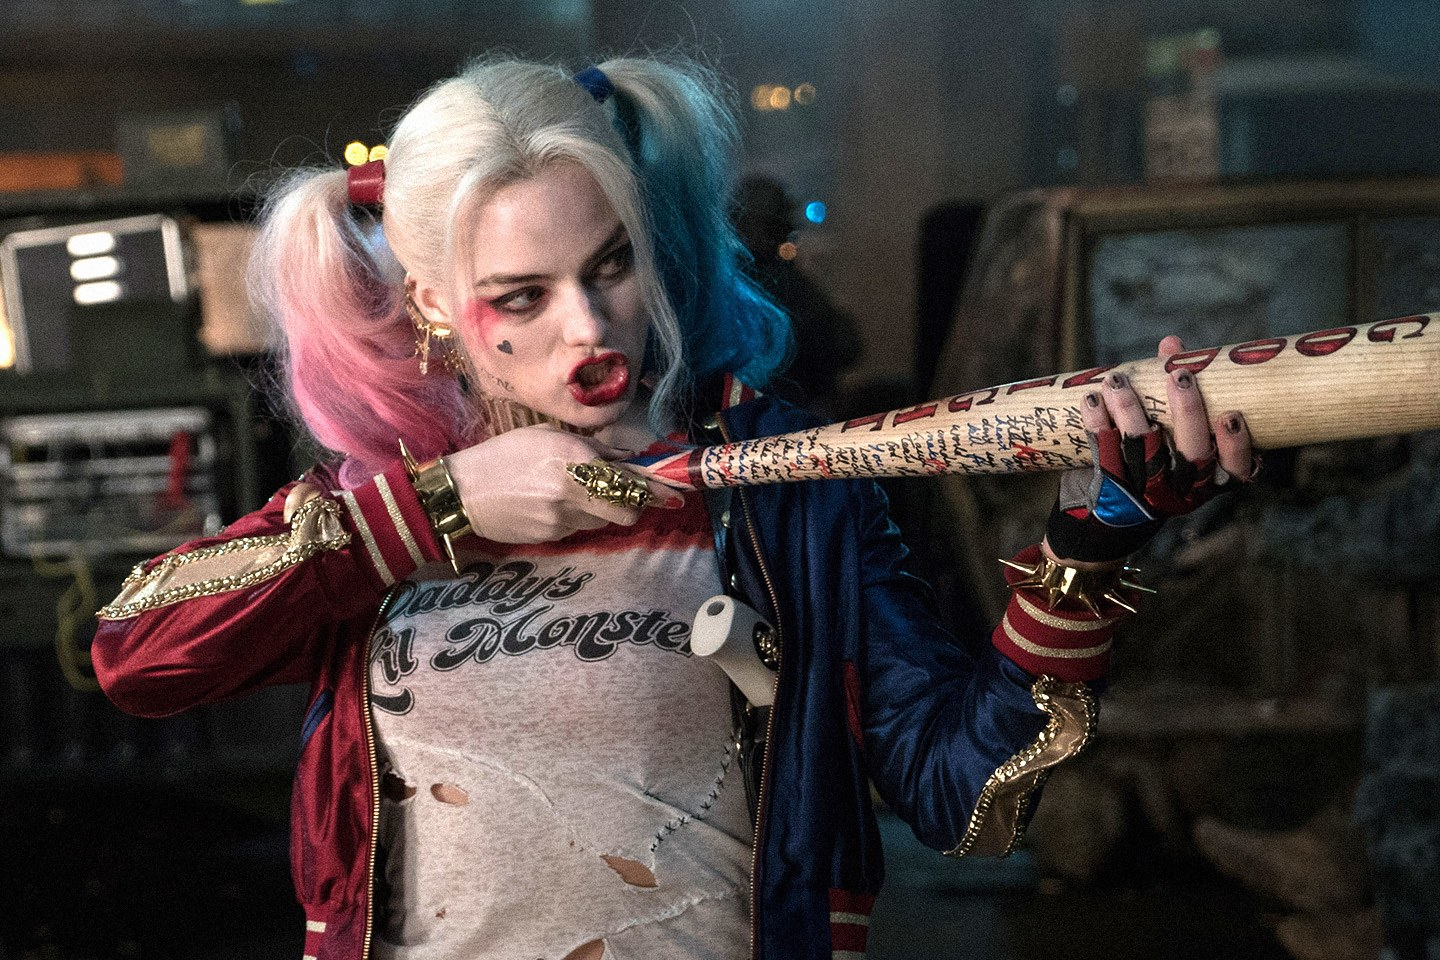 Harley Quinn is one of Margot's biggest roles. Credit: DC Entertainment / Warner Bros.